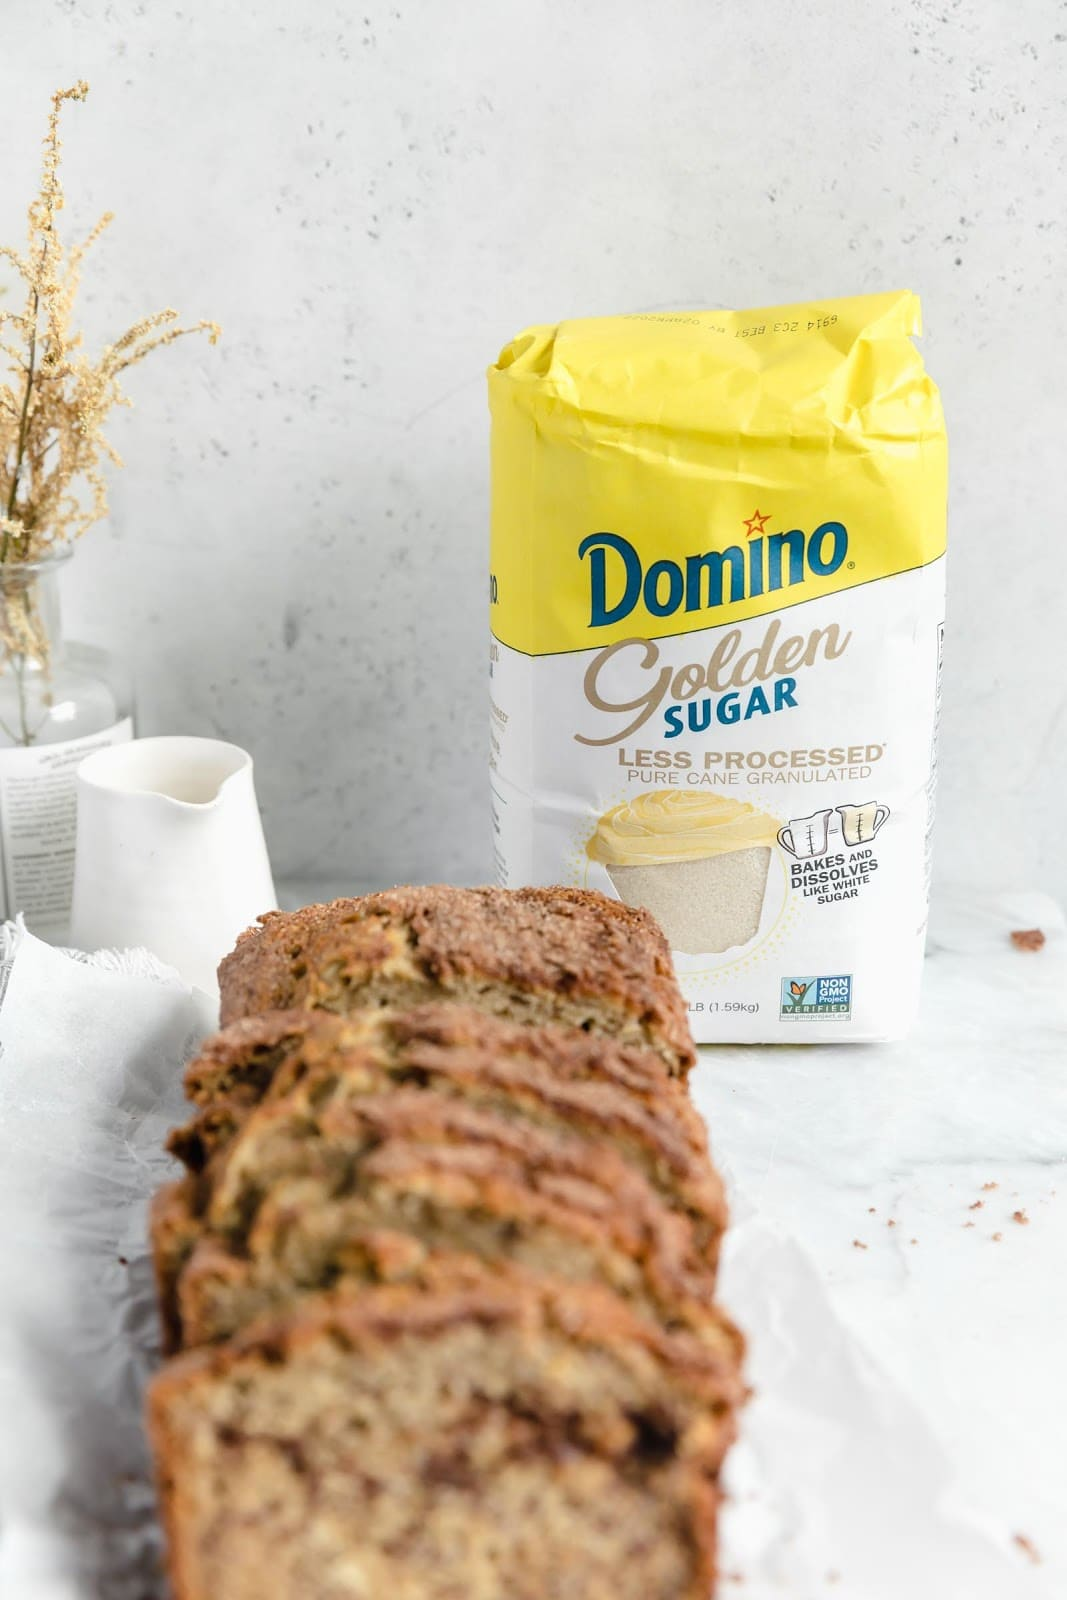 slices of snickerdoodle banana bread with domino golden sugar